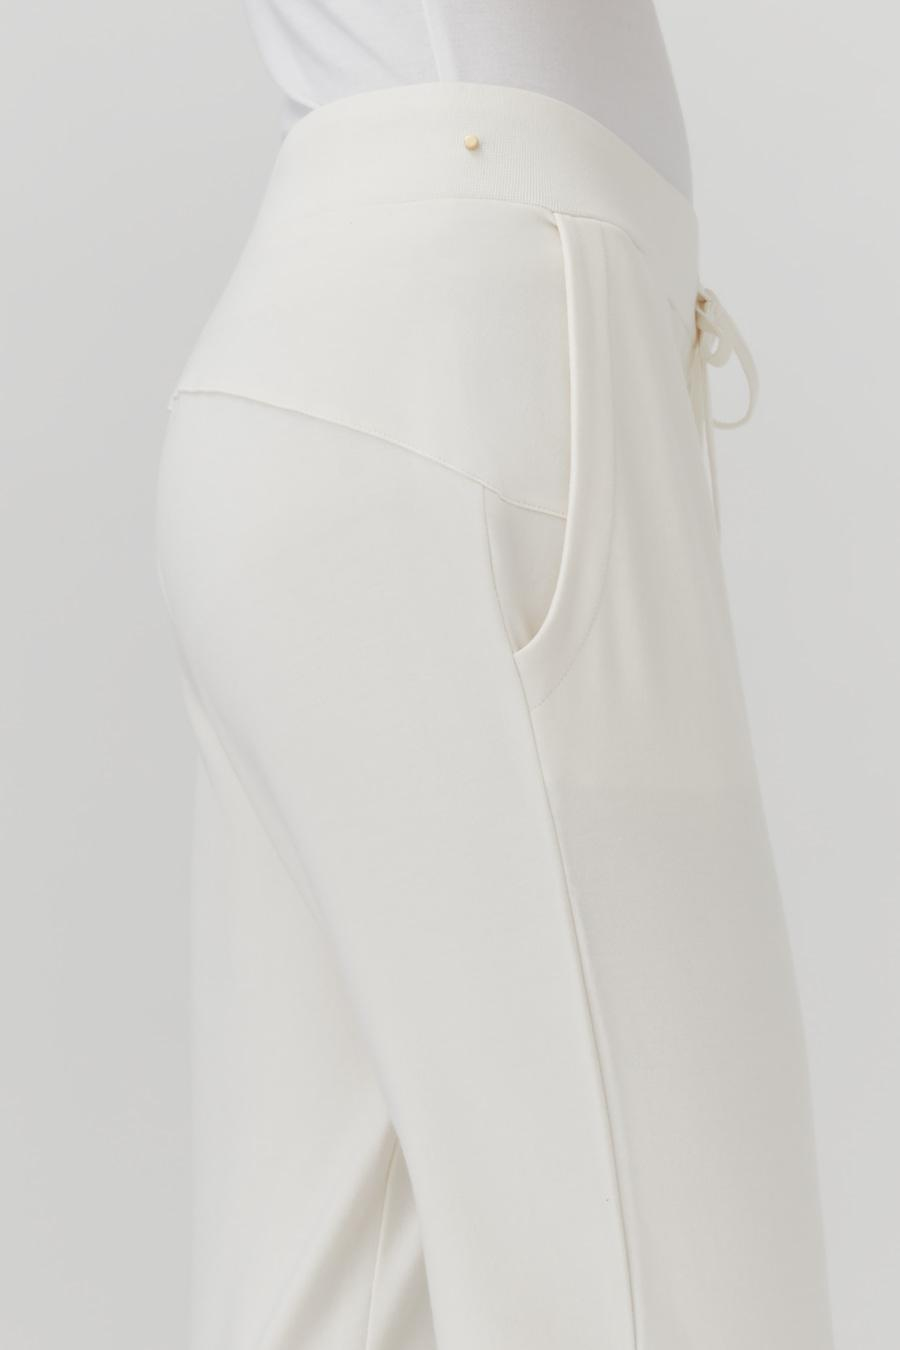 Women's French Terry Tapered Lounge Pant in Ecru   Size: 3